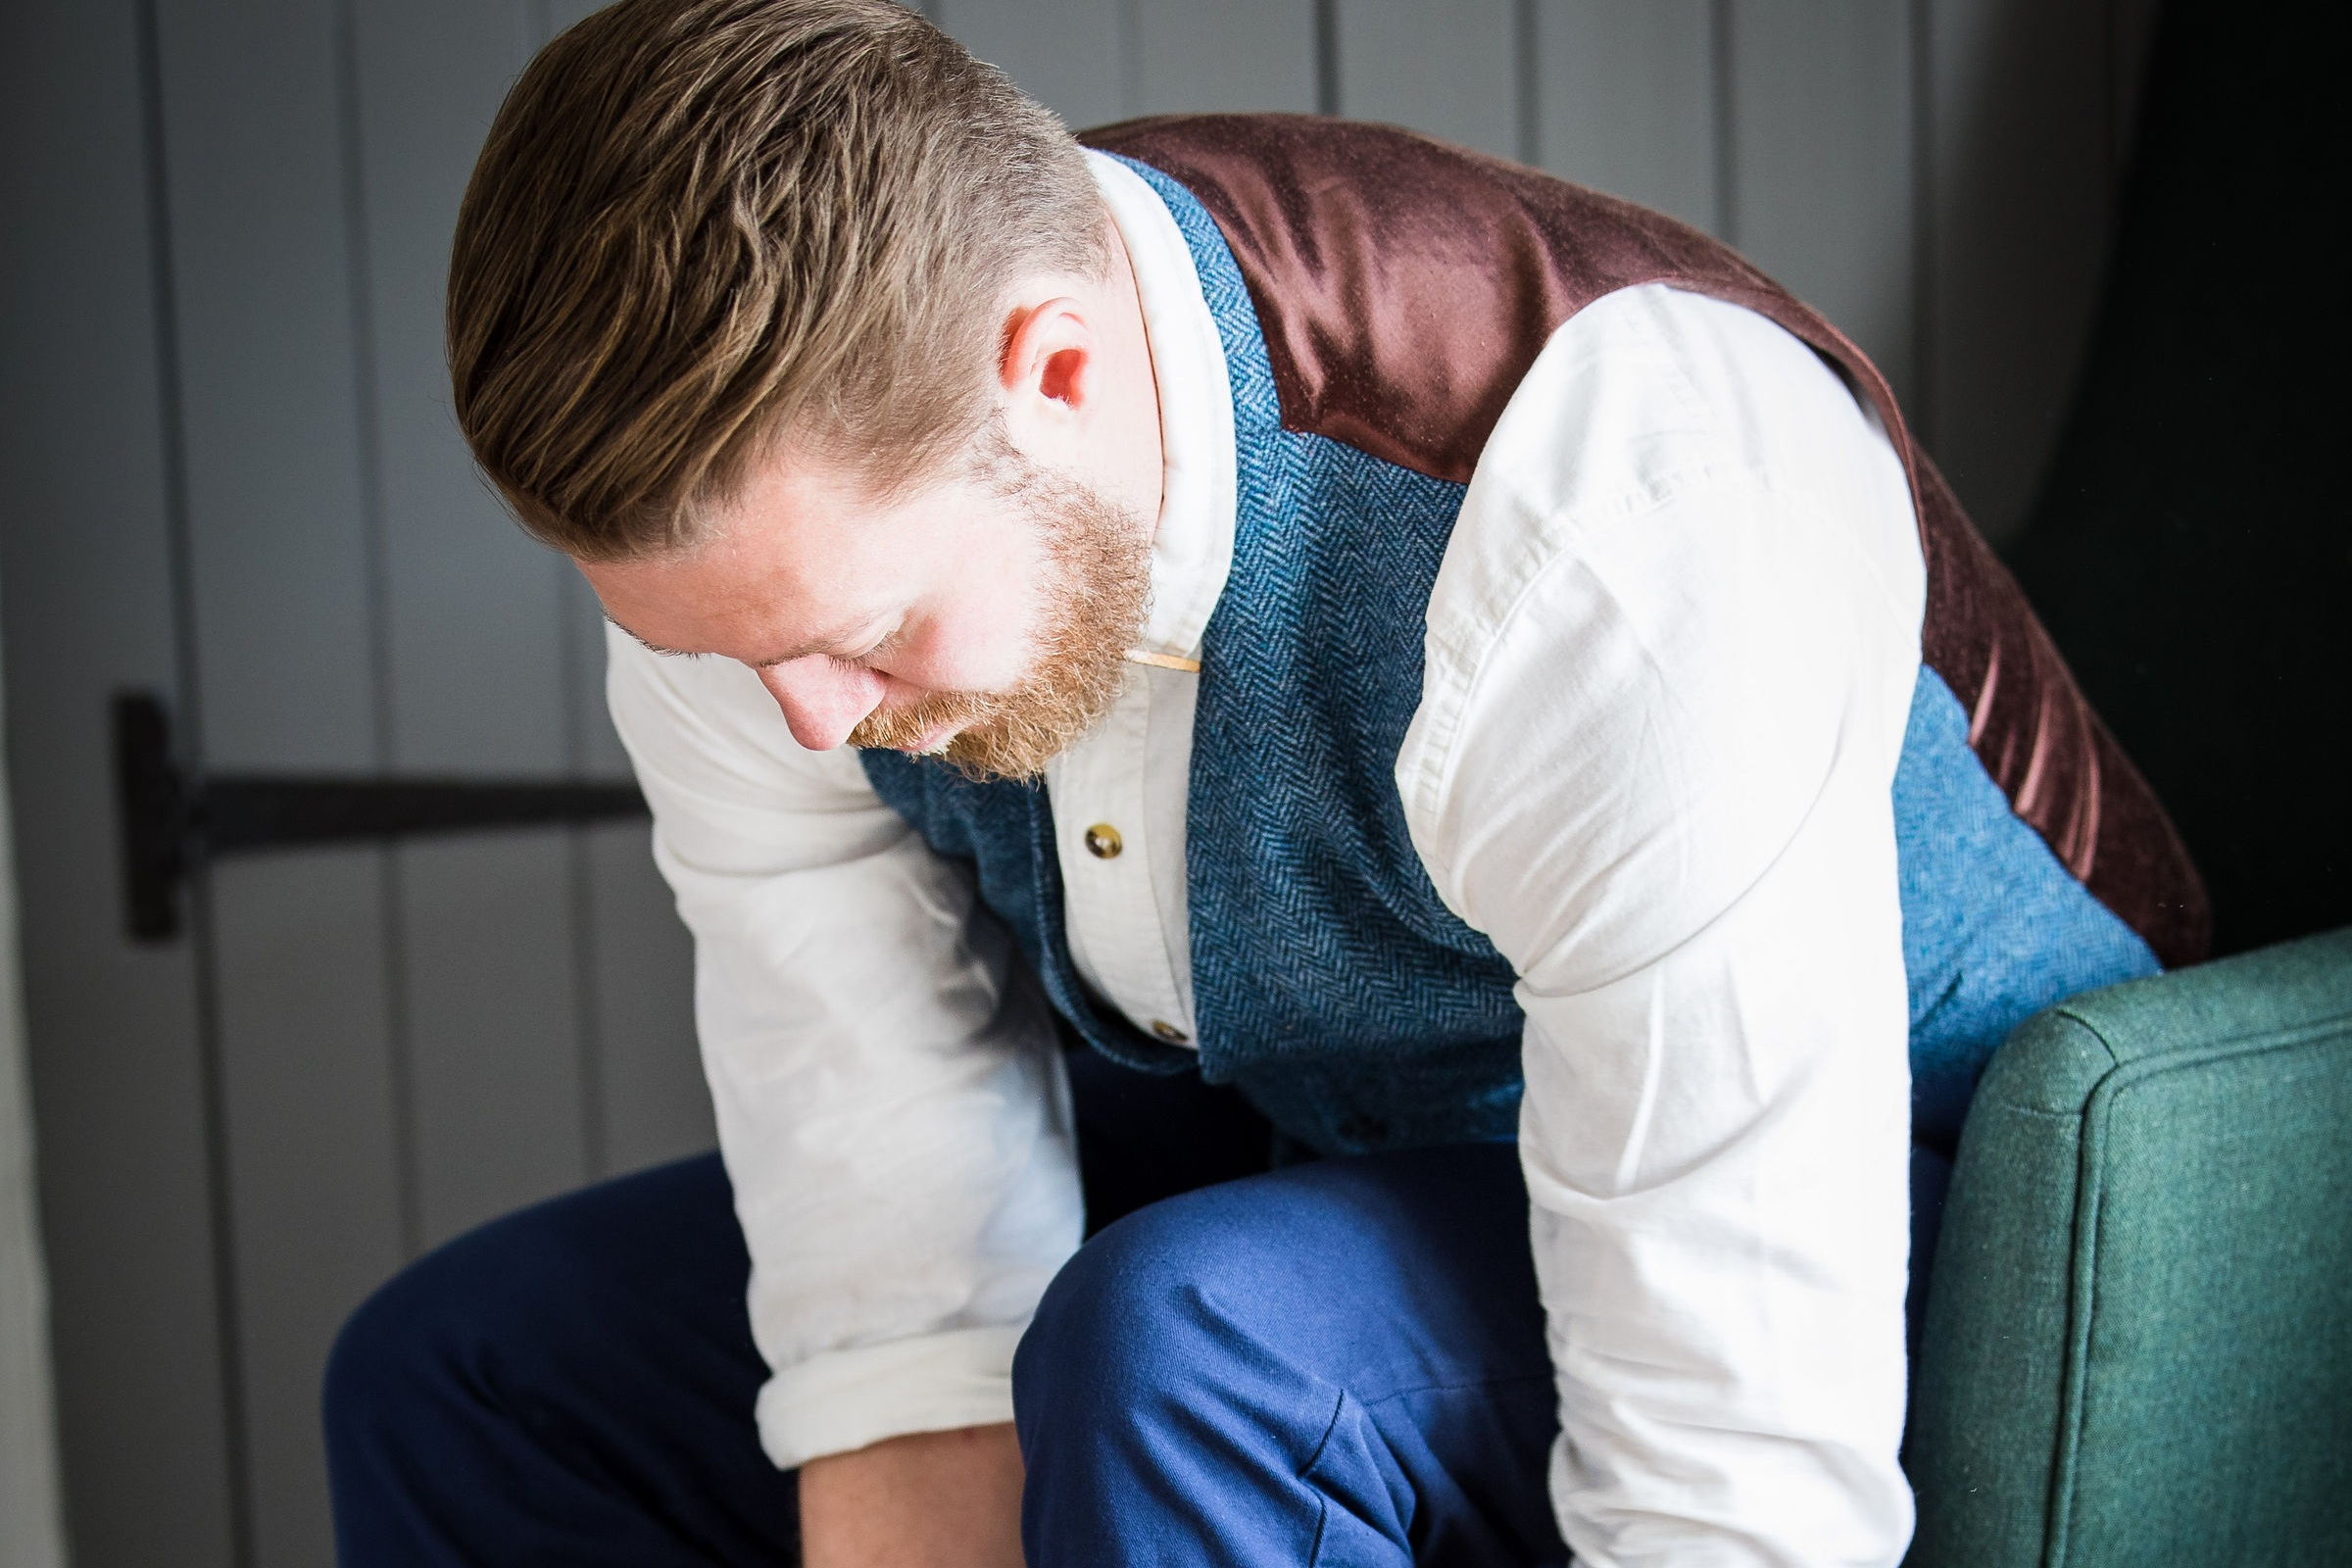 Cock and Bull tweed - Cock & Bull Tweed Collection brings you a colourful, modern and stylish collection of tweed clothing and accessories. We currently offer handsome waistcoats, caps and bow ties in a striking collection of artisan-produced handwoven tweeds, sourced from the Isle of Lewis in the Outer Hebrides of Scotland. We manufacture entirely in the United Kingdom - always have and always will - and operate to a sustainable and ethical remit.